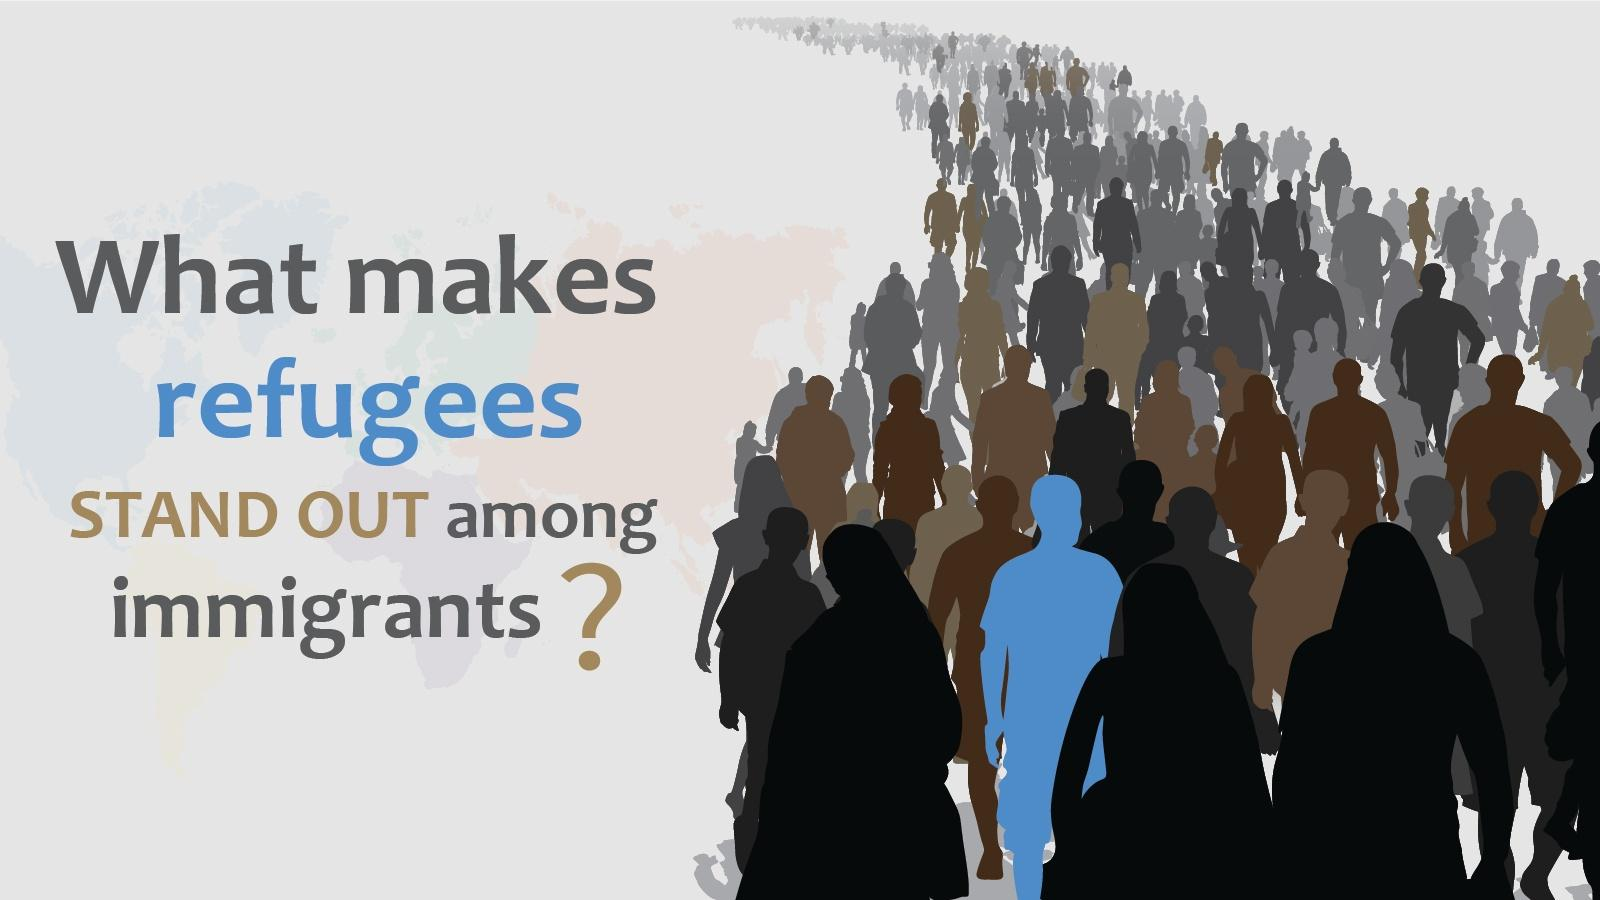 What makes refugees stand out among immigrants?